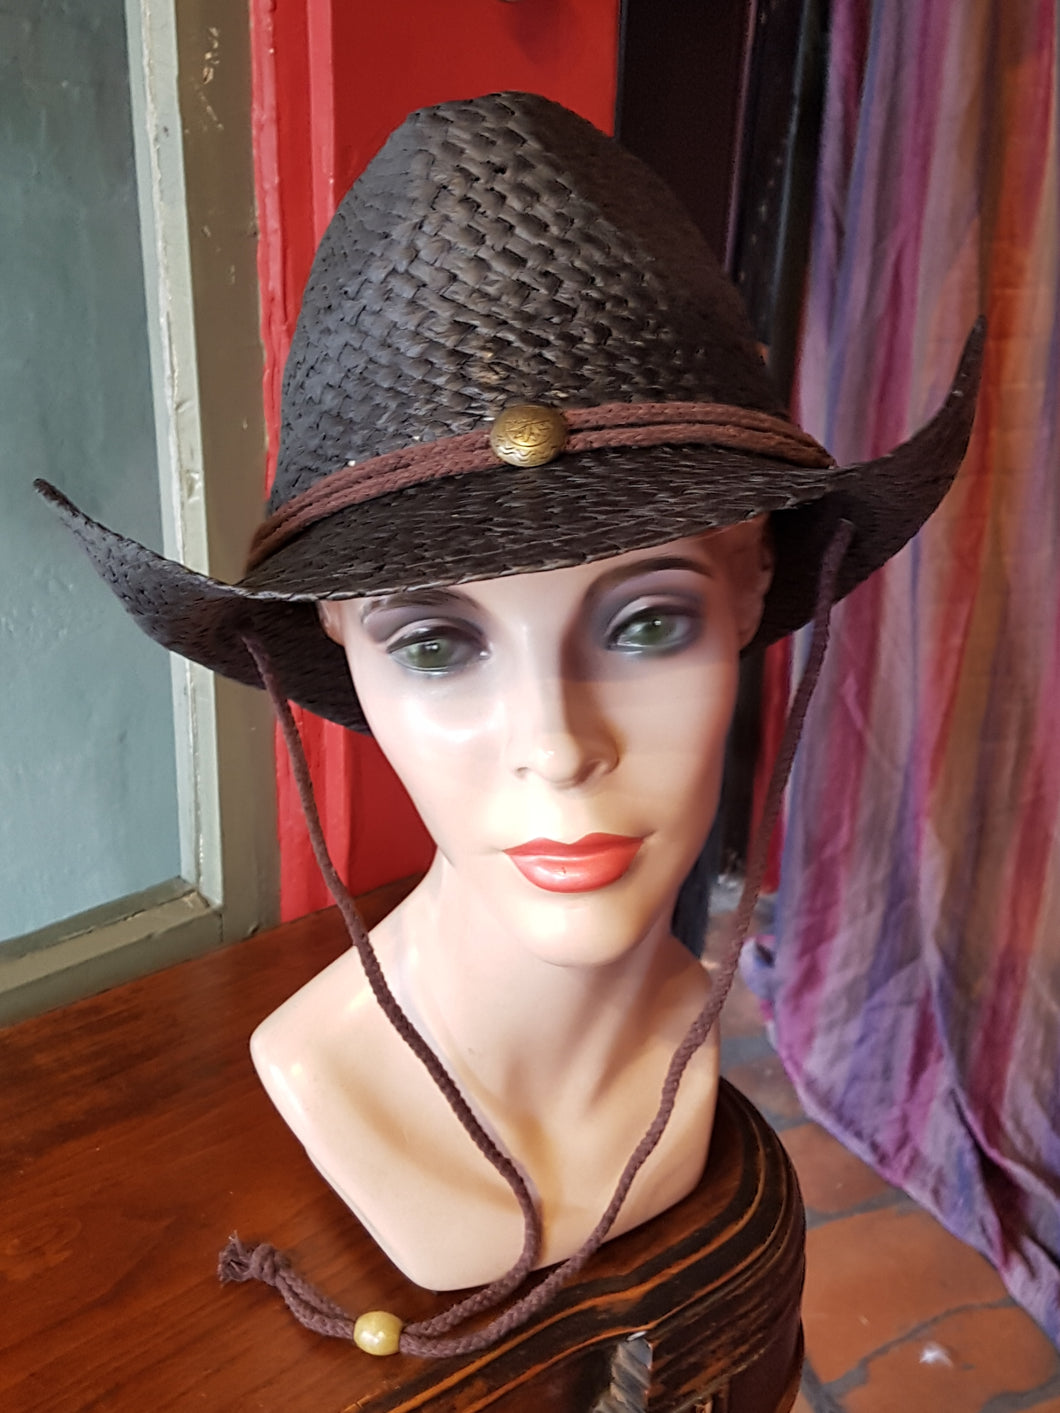 Straw Cowboy/Cowgirl Hat, Black with brown cord band and chin strap, metal detail